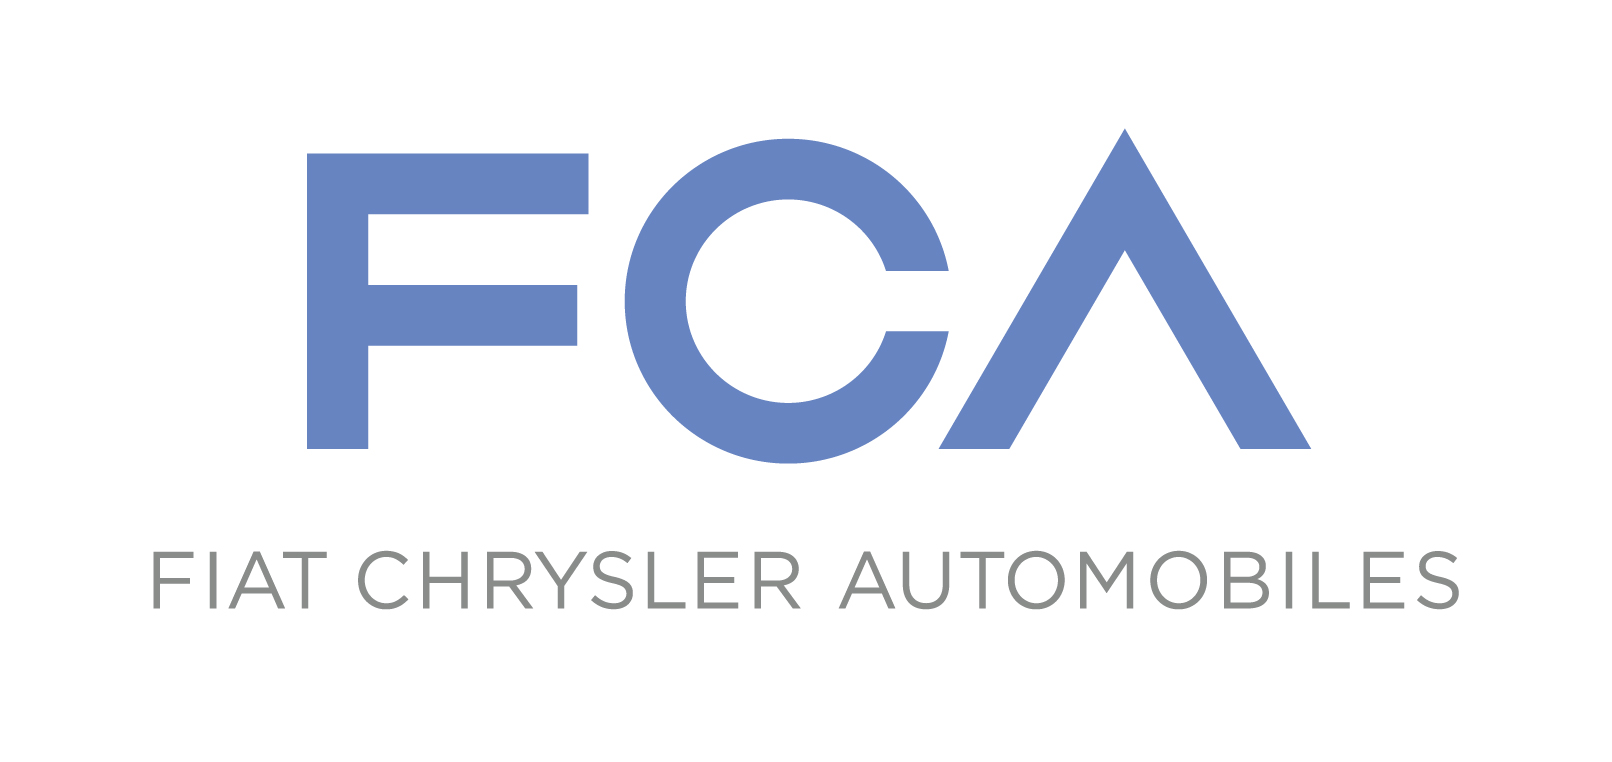 Chrysler ATF+4 program information